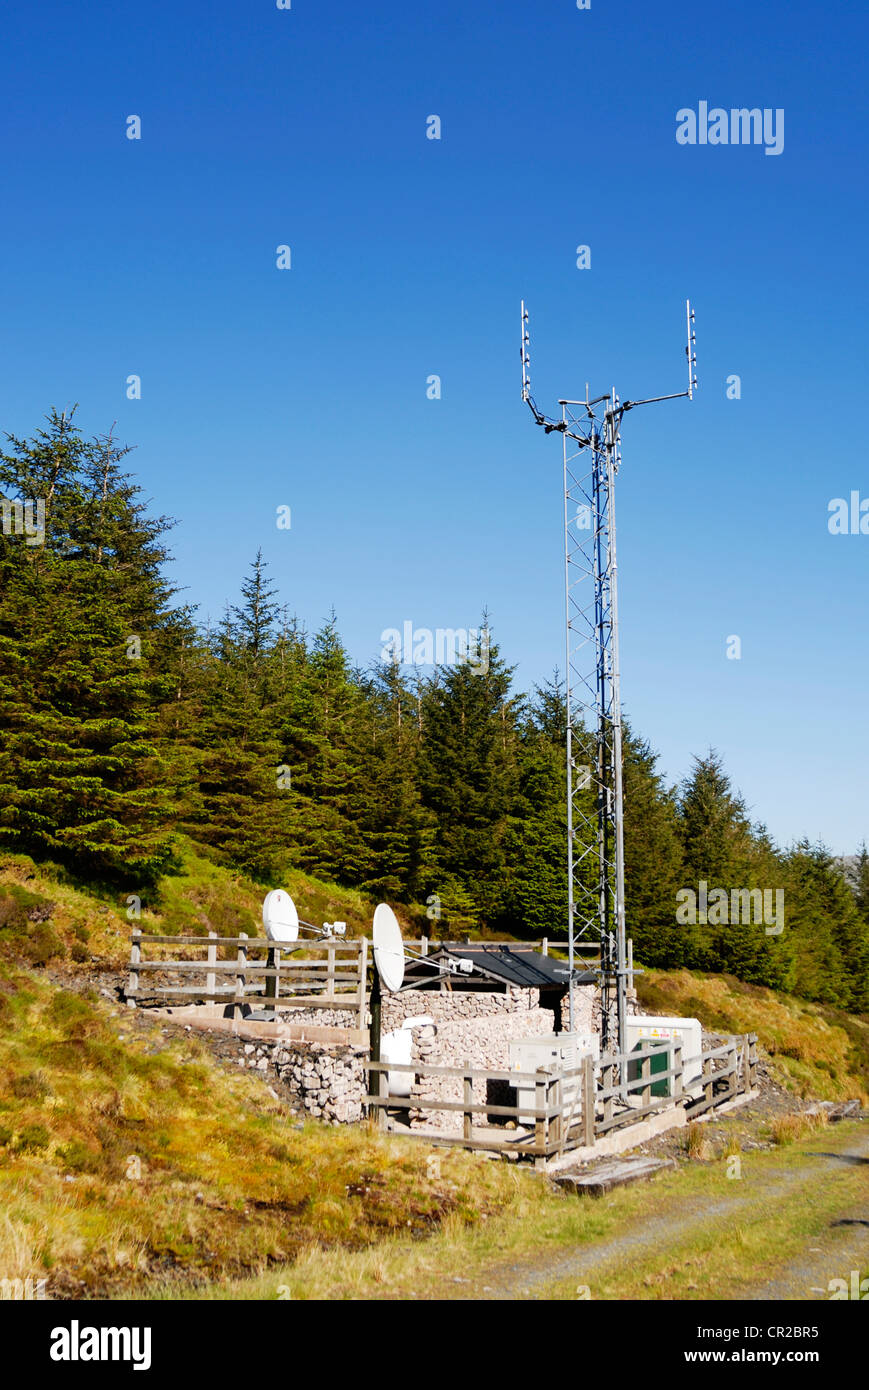 Isolated repeater station for cell phones situated in the Welsh moorlands. - Stock Image